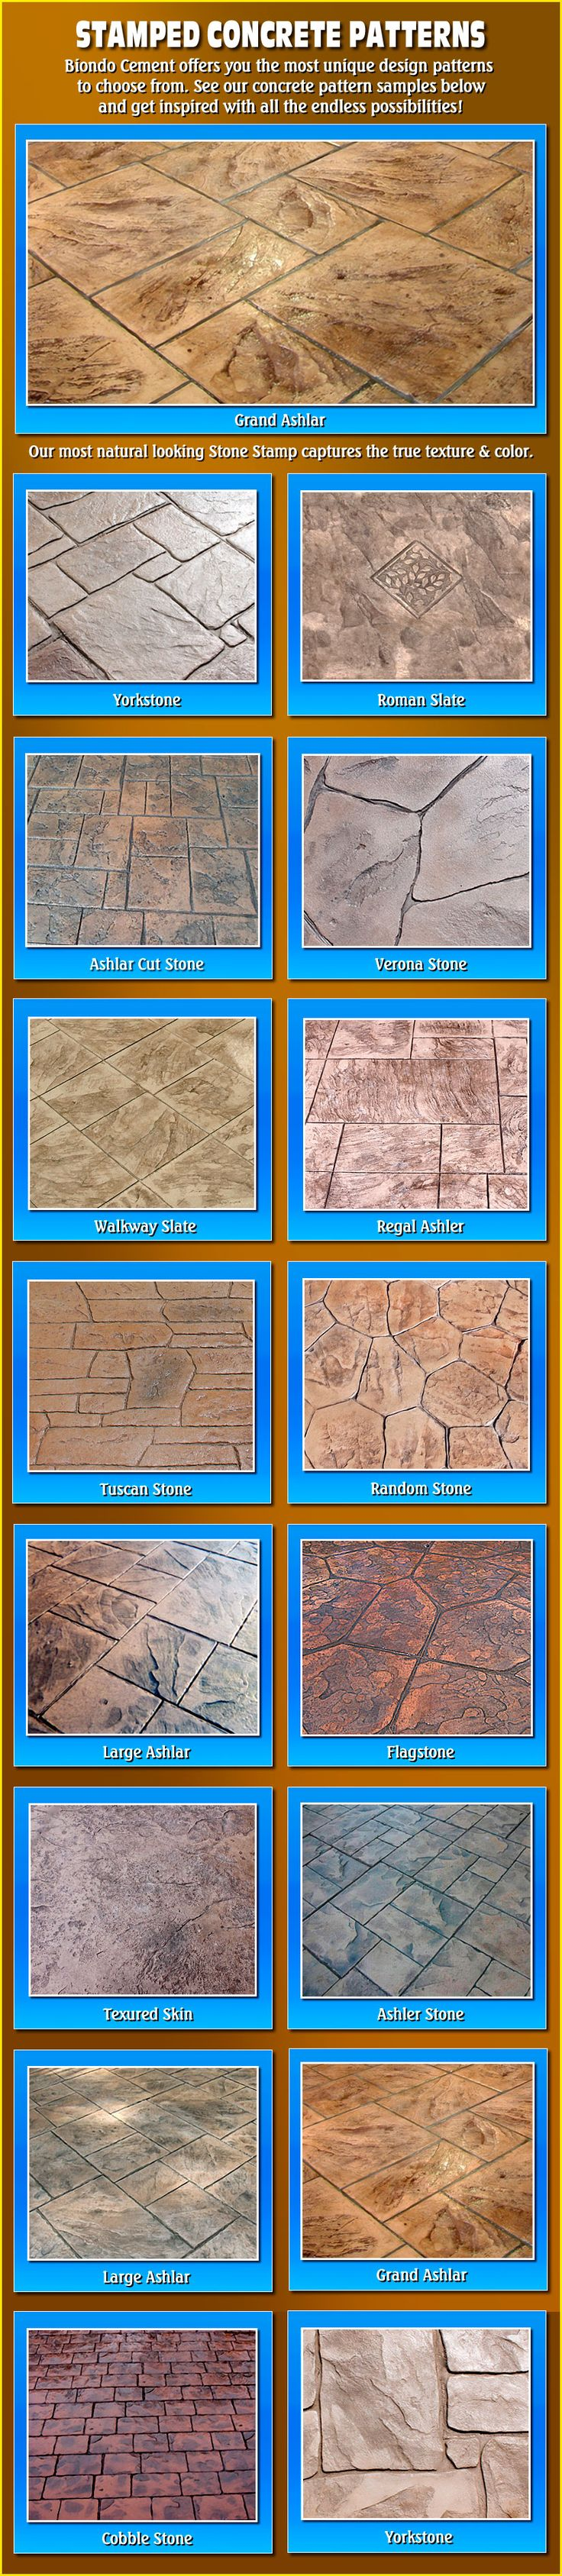 Stamped Concrete. This Is Really Great. Would Love To Have A Patio Or  Driveway